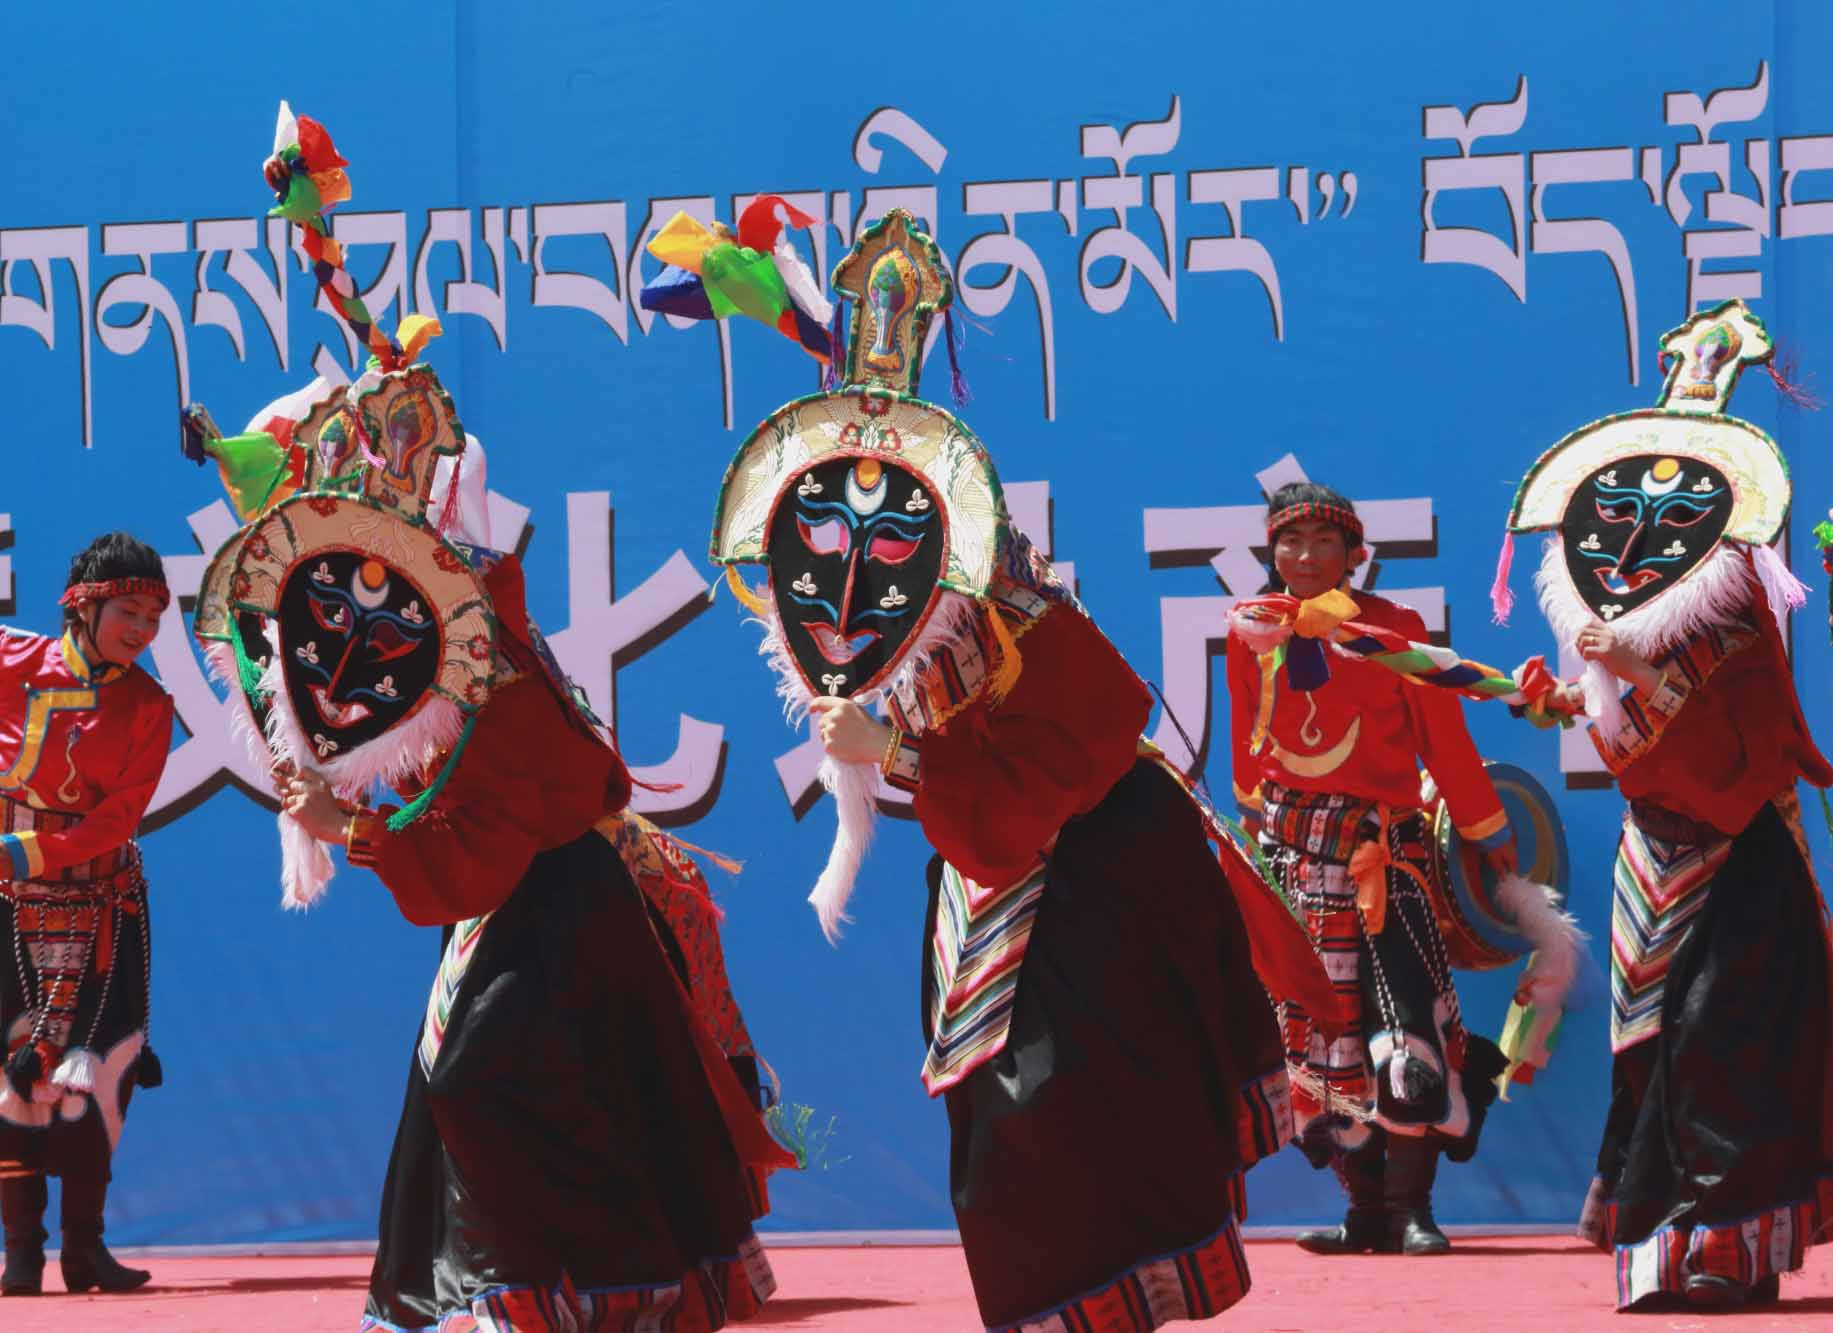 Tibet builds first intangible cultural heritage museum